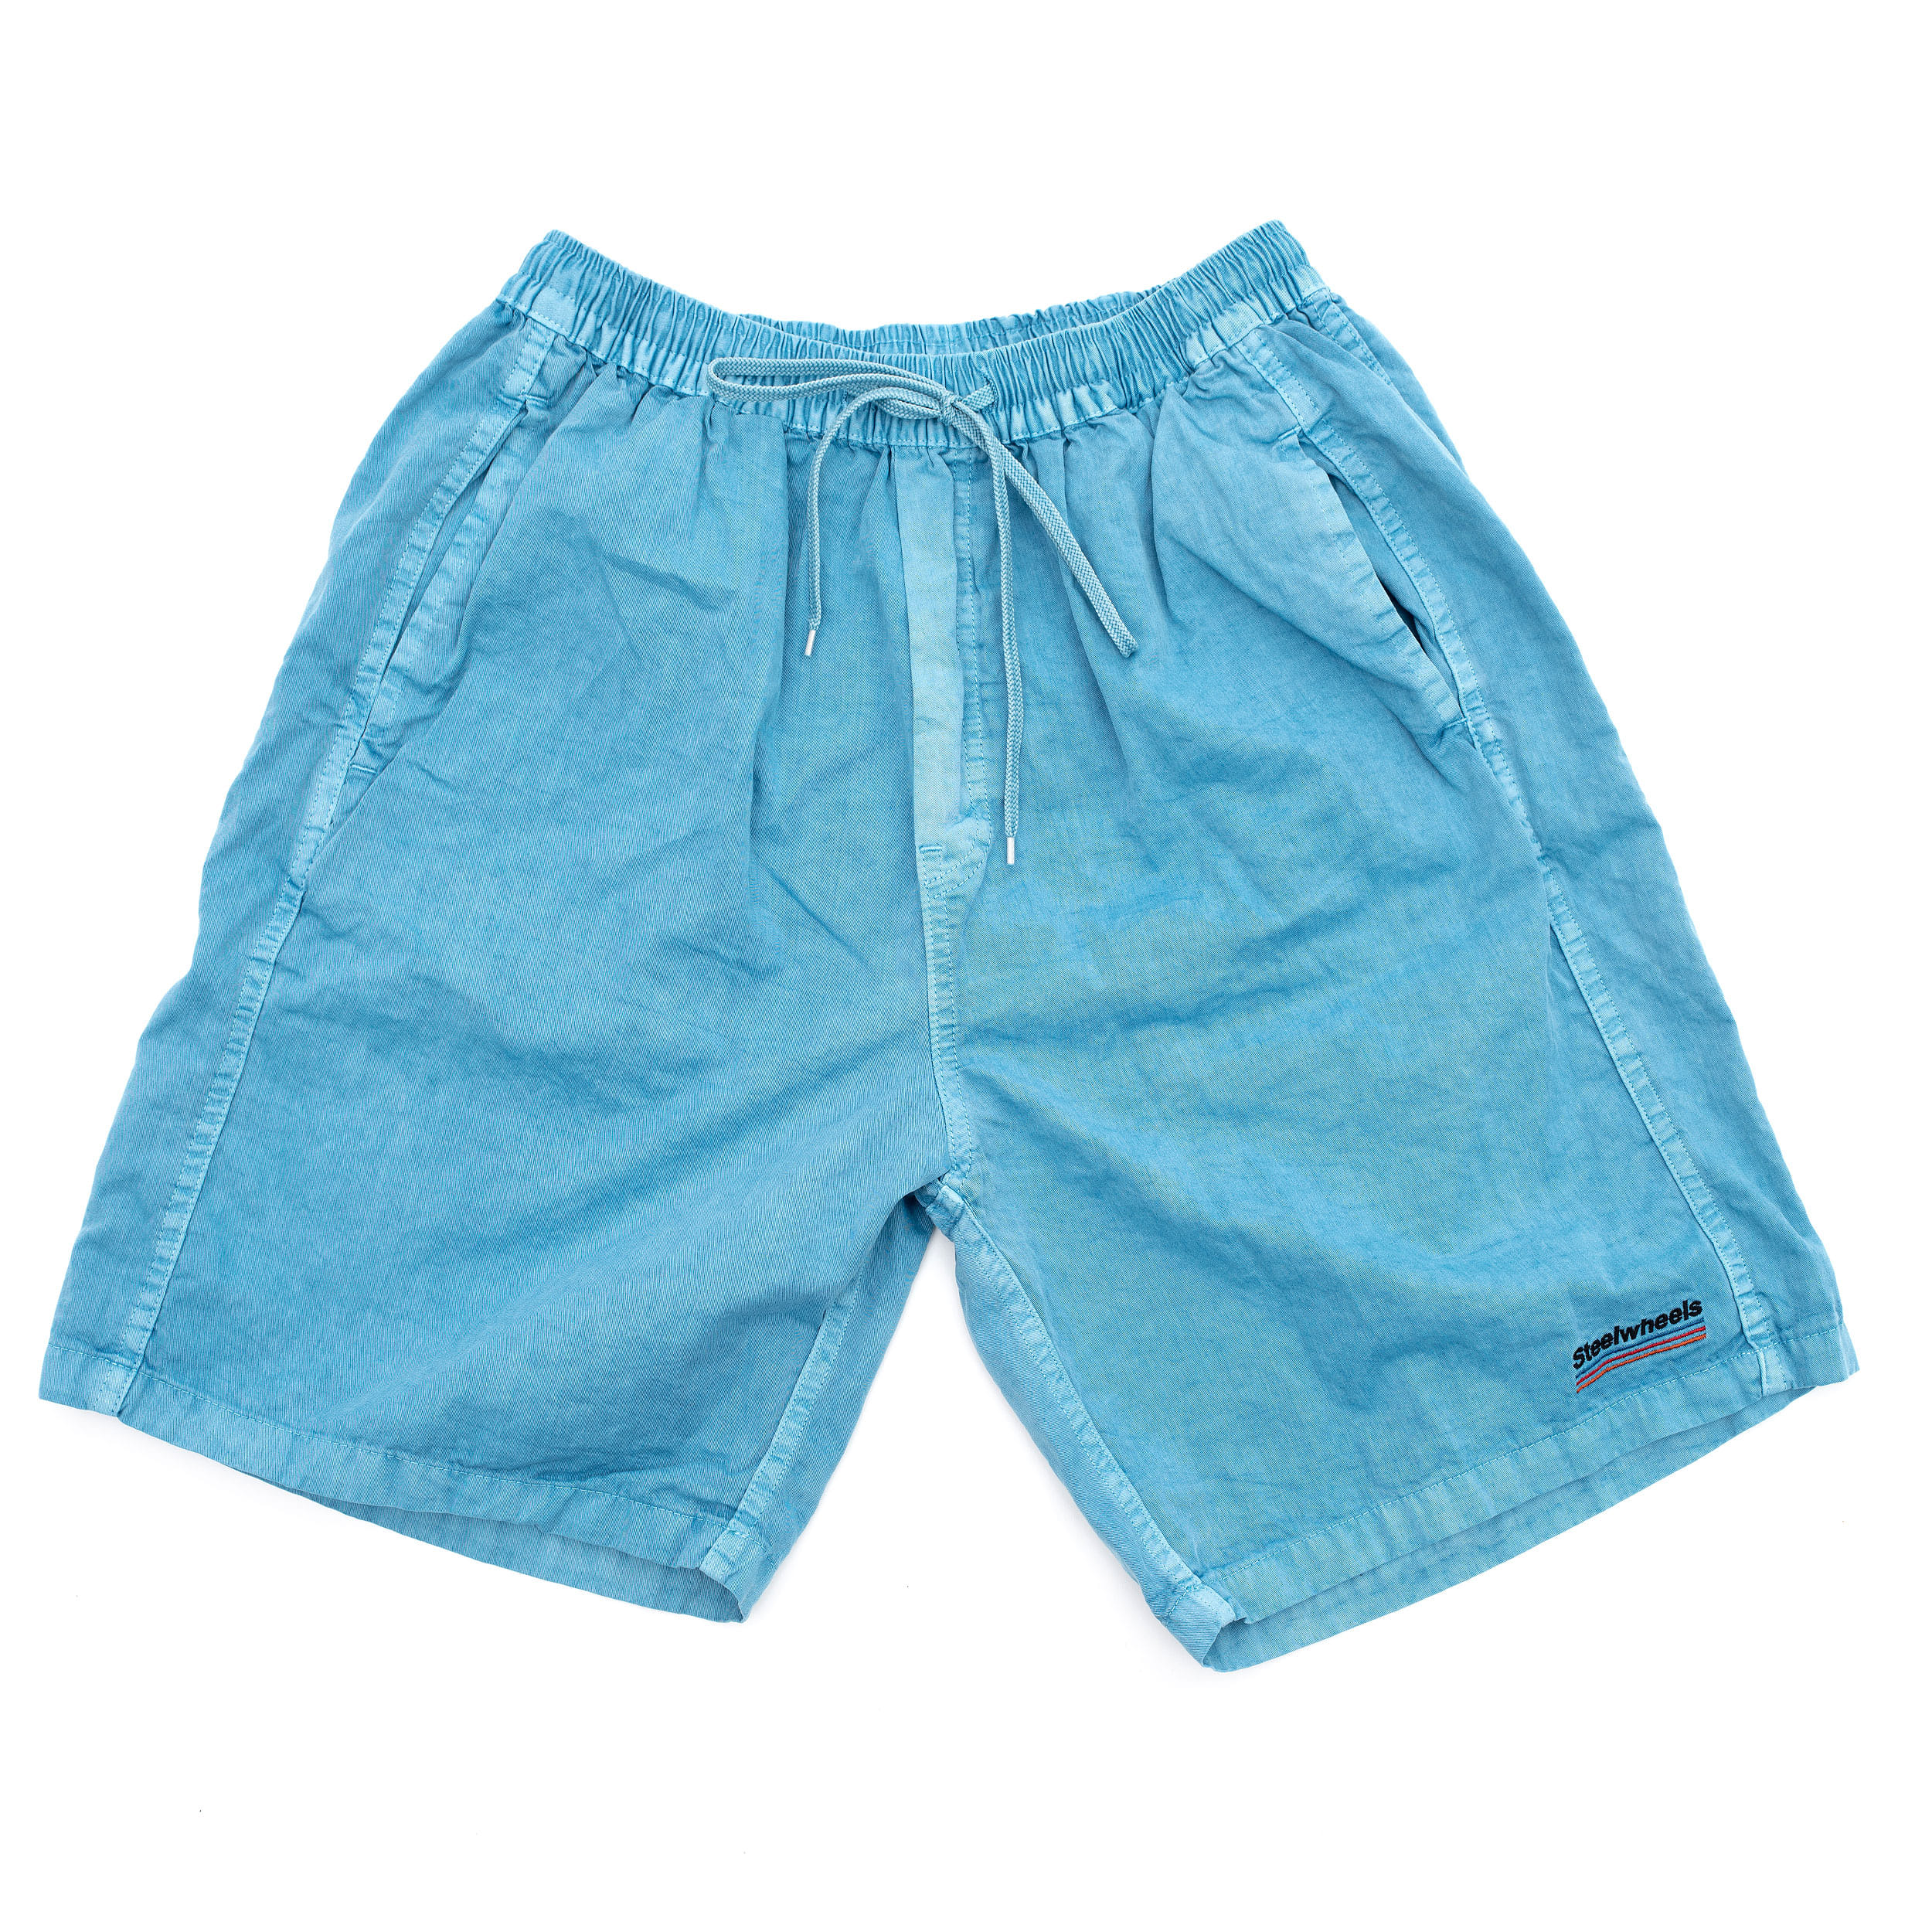 SUMMER DYED SHORTS (SKY BLUE)